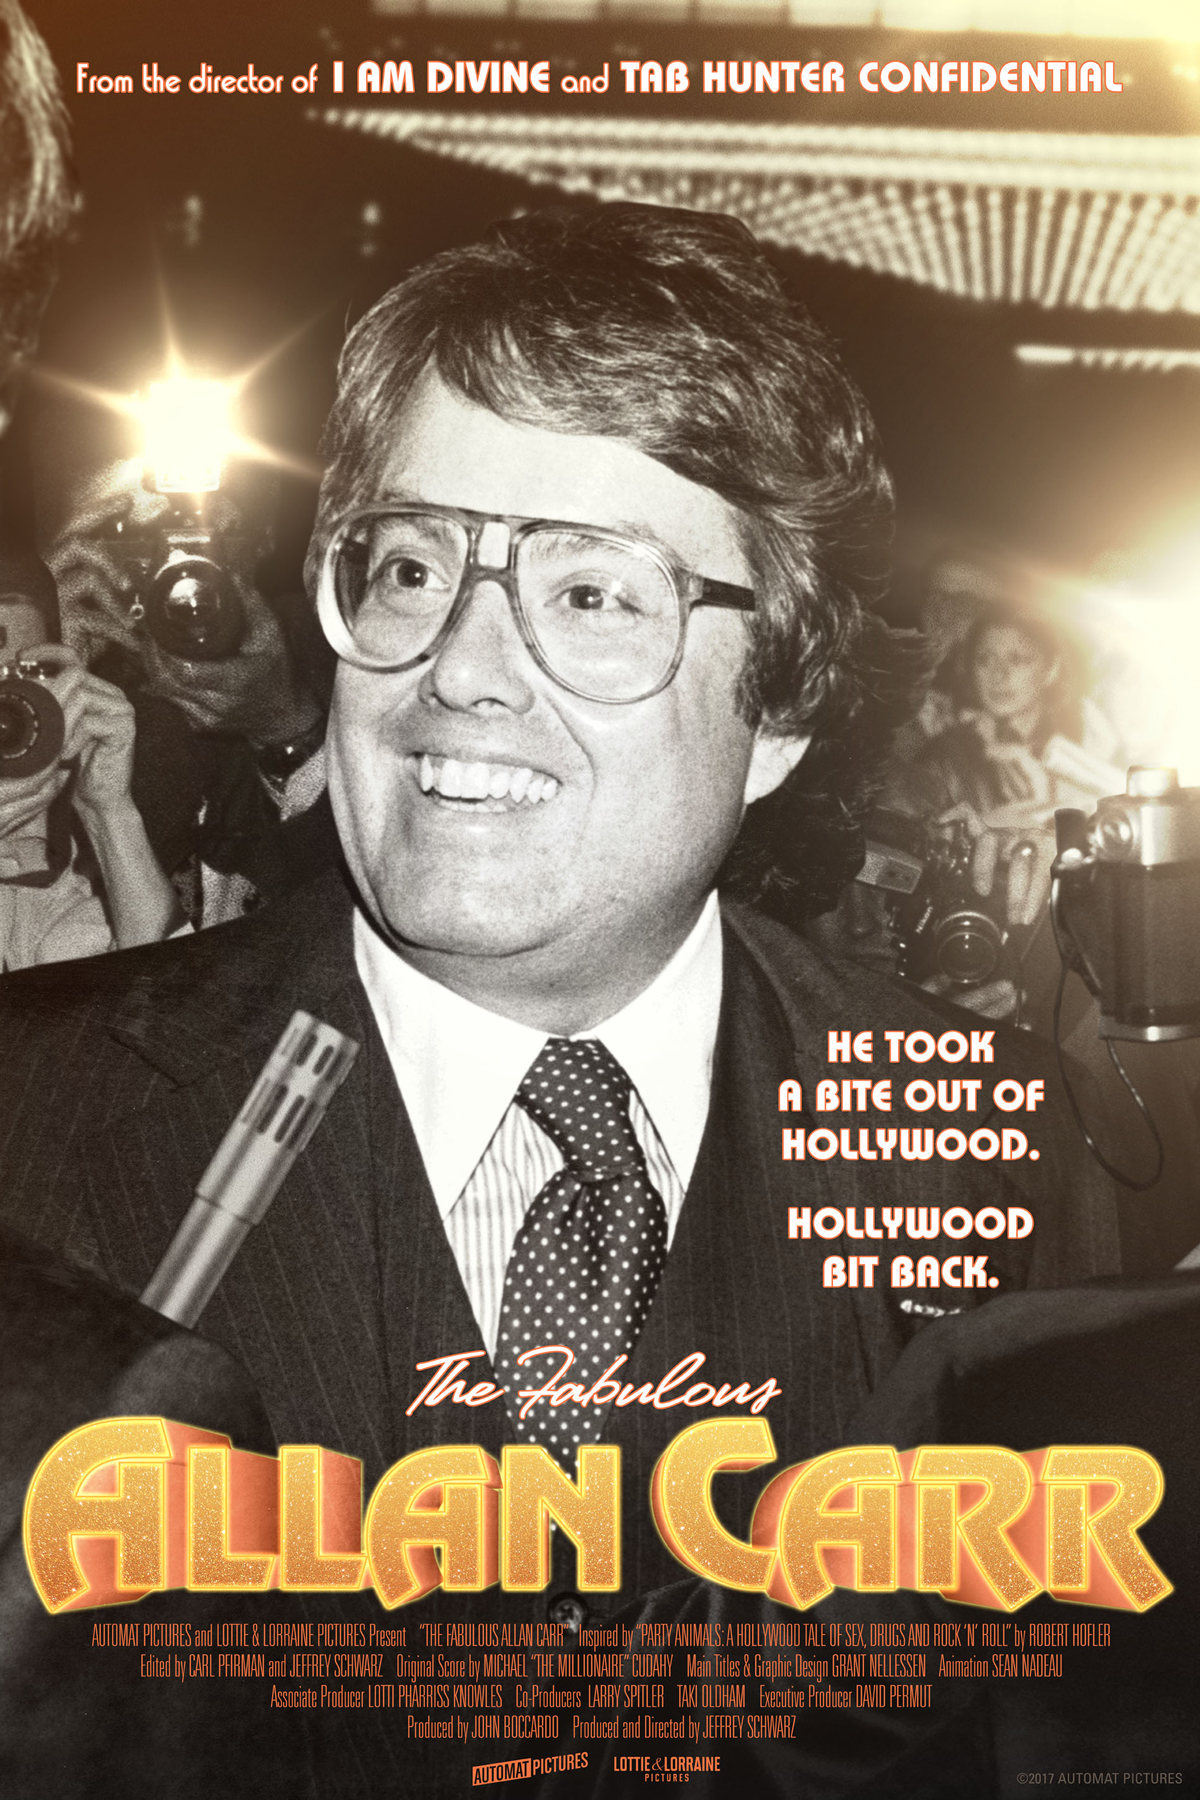 Poster for The Fabulous Allan Carr